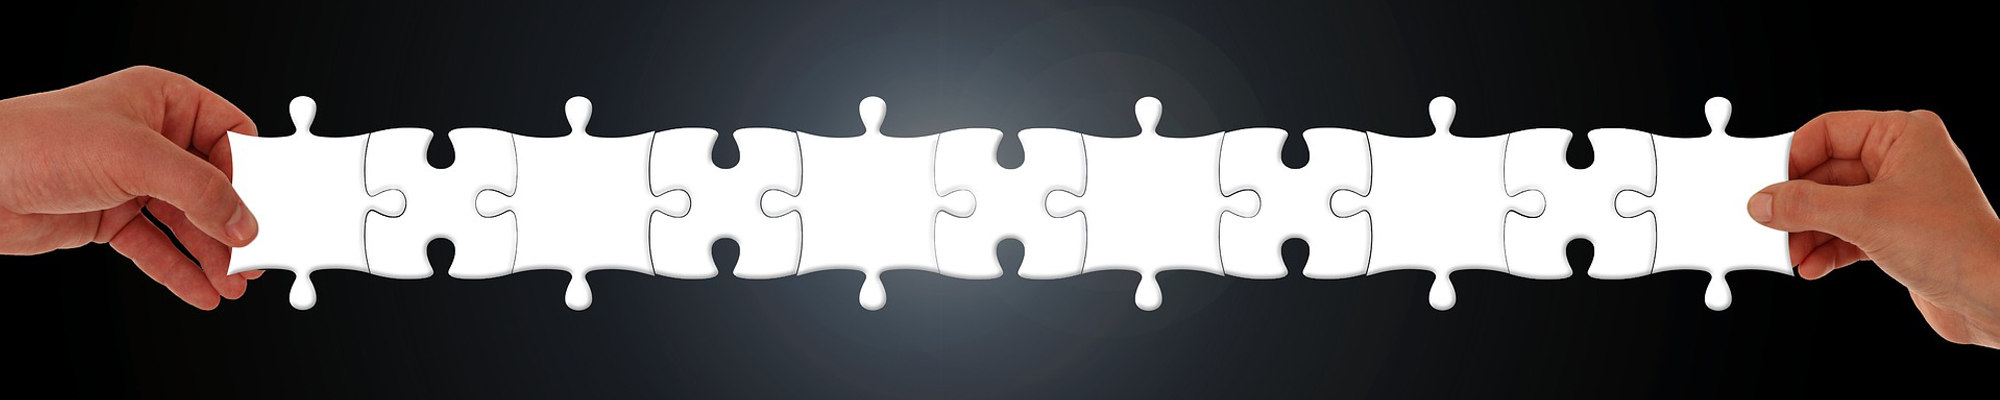 two hands holding linked puzzle pieces